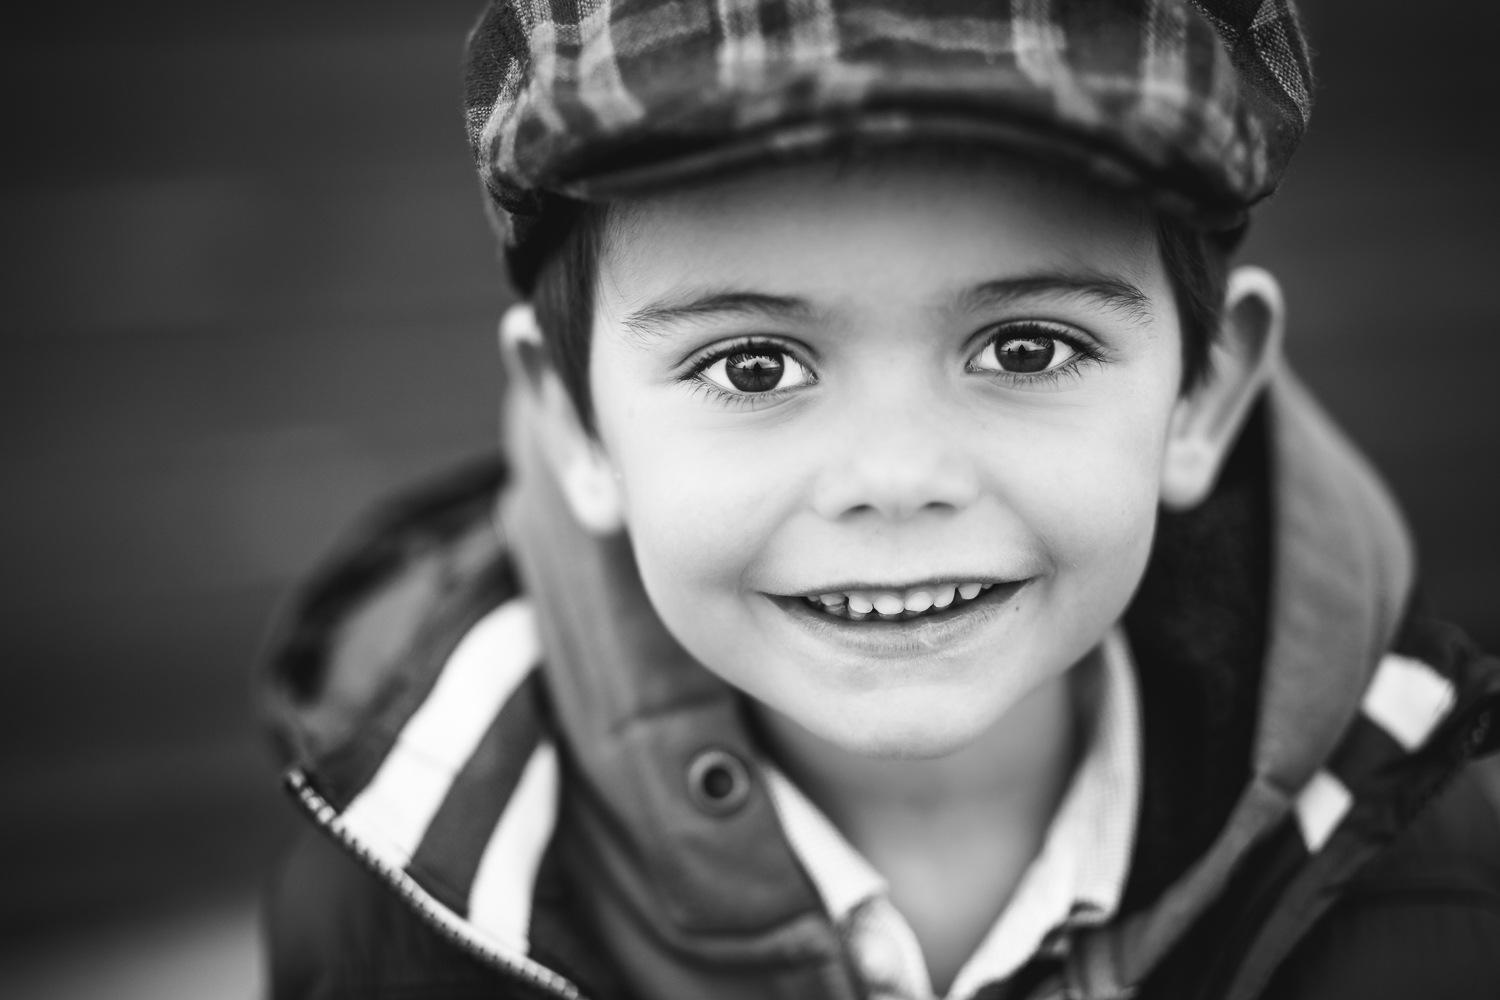 Black-and-white-photo-of-a-young-boy-in-a-cap-by-Stockholm-family-photographer.jpg